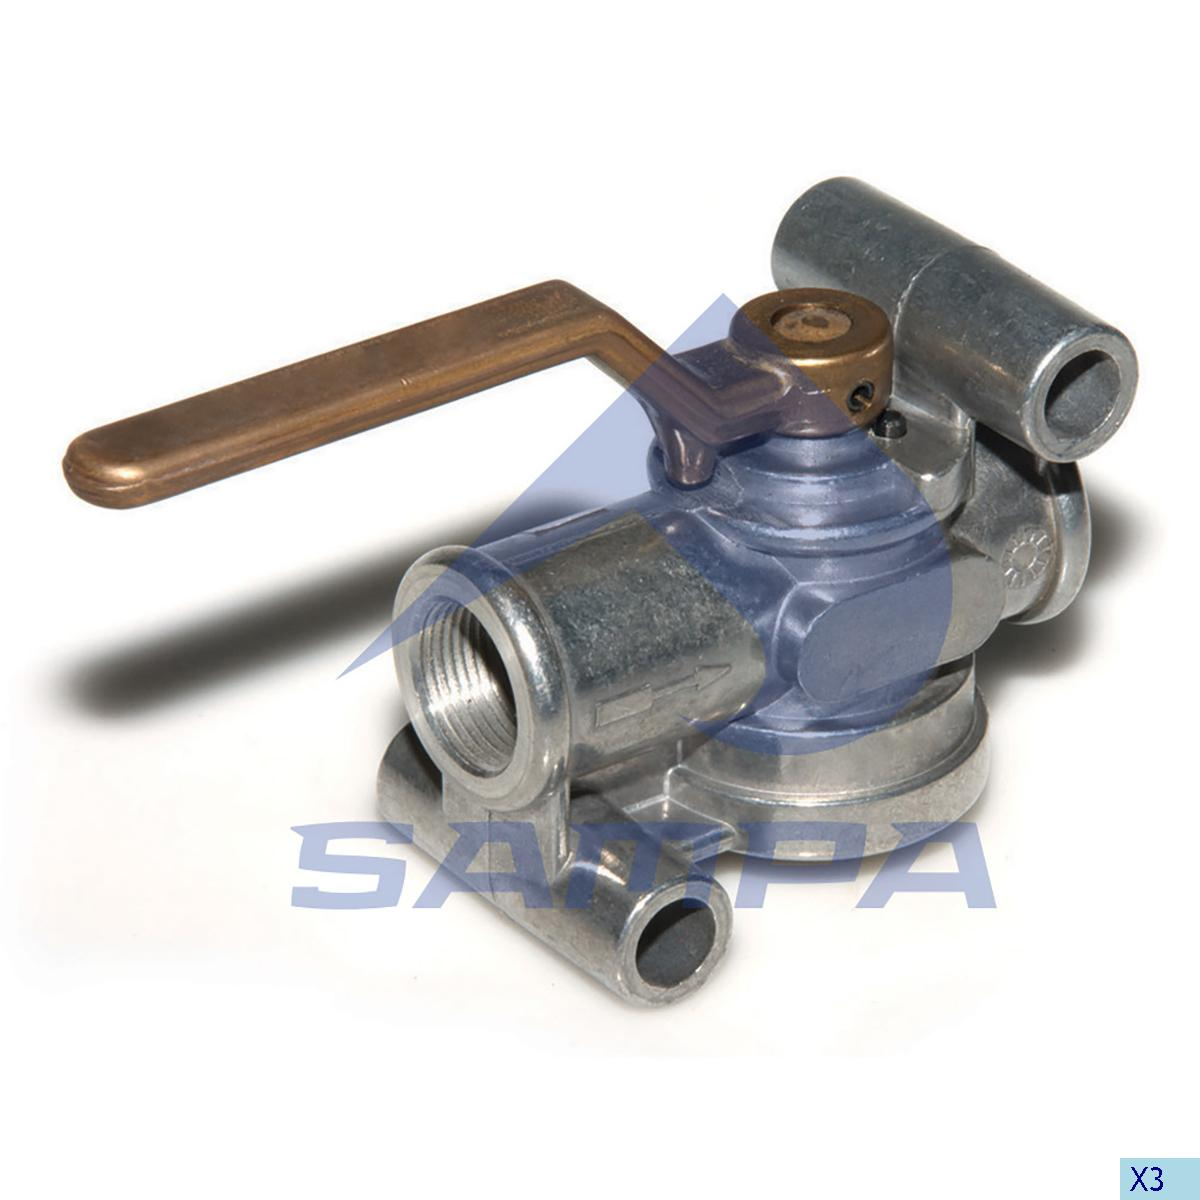 Shut-Off Valve, Mercedes, Compressed Air System